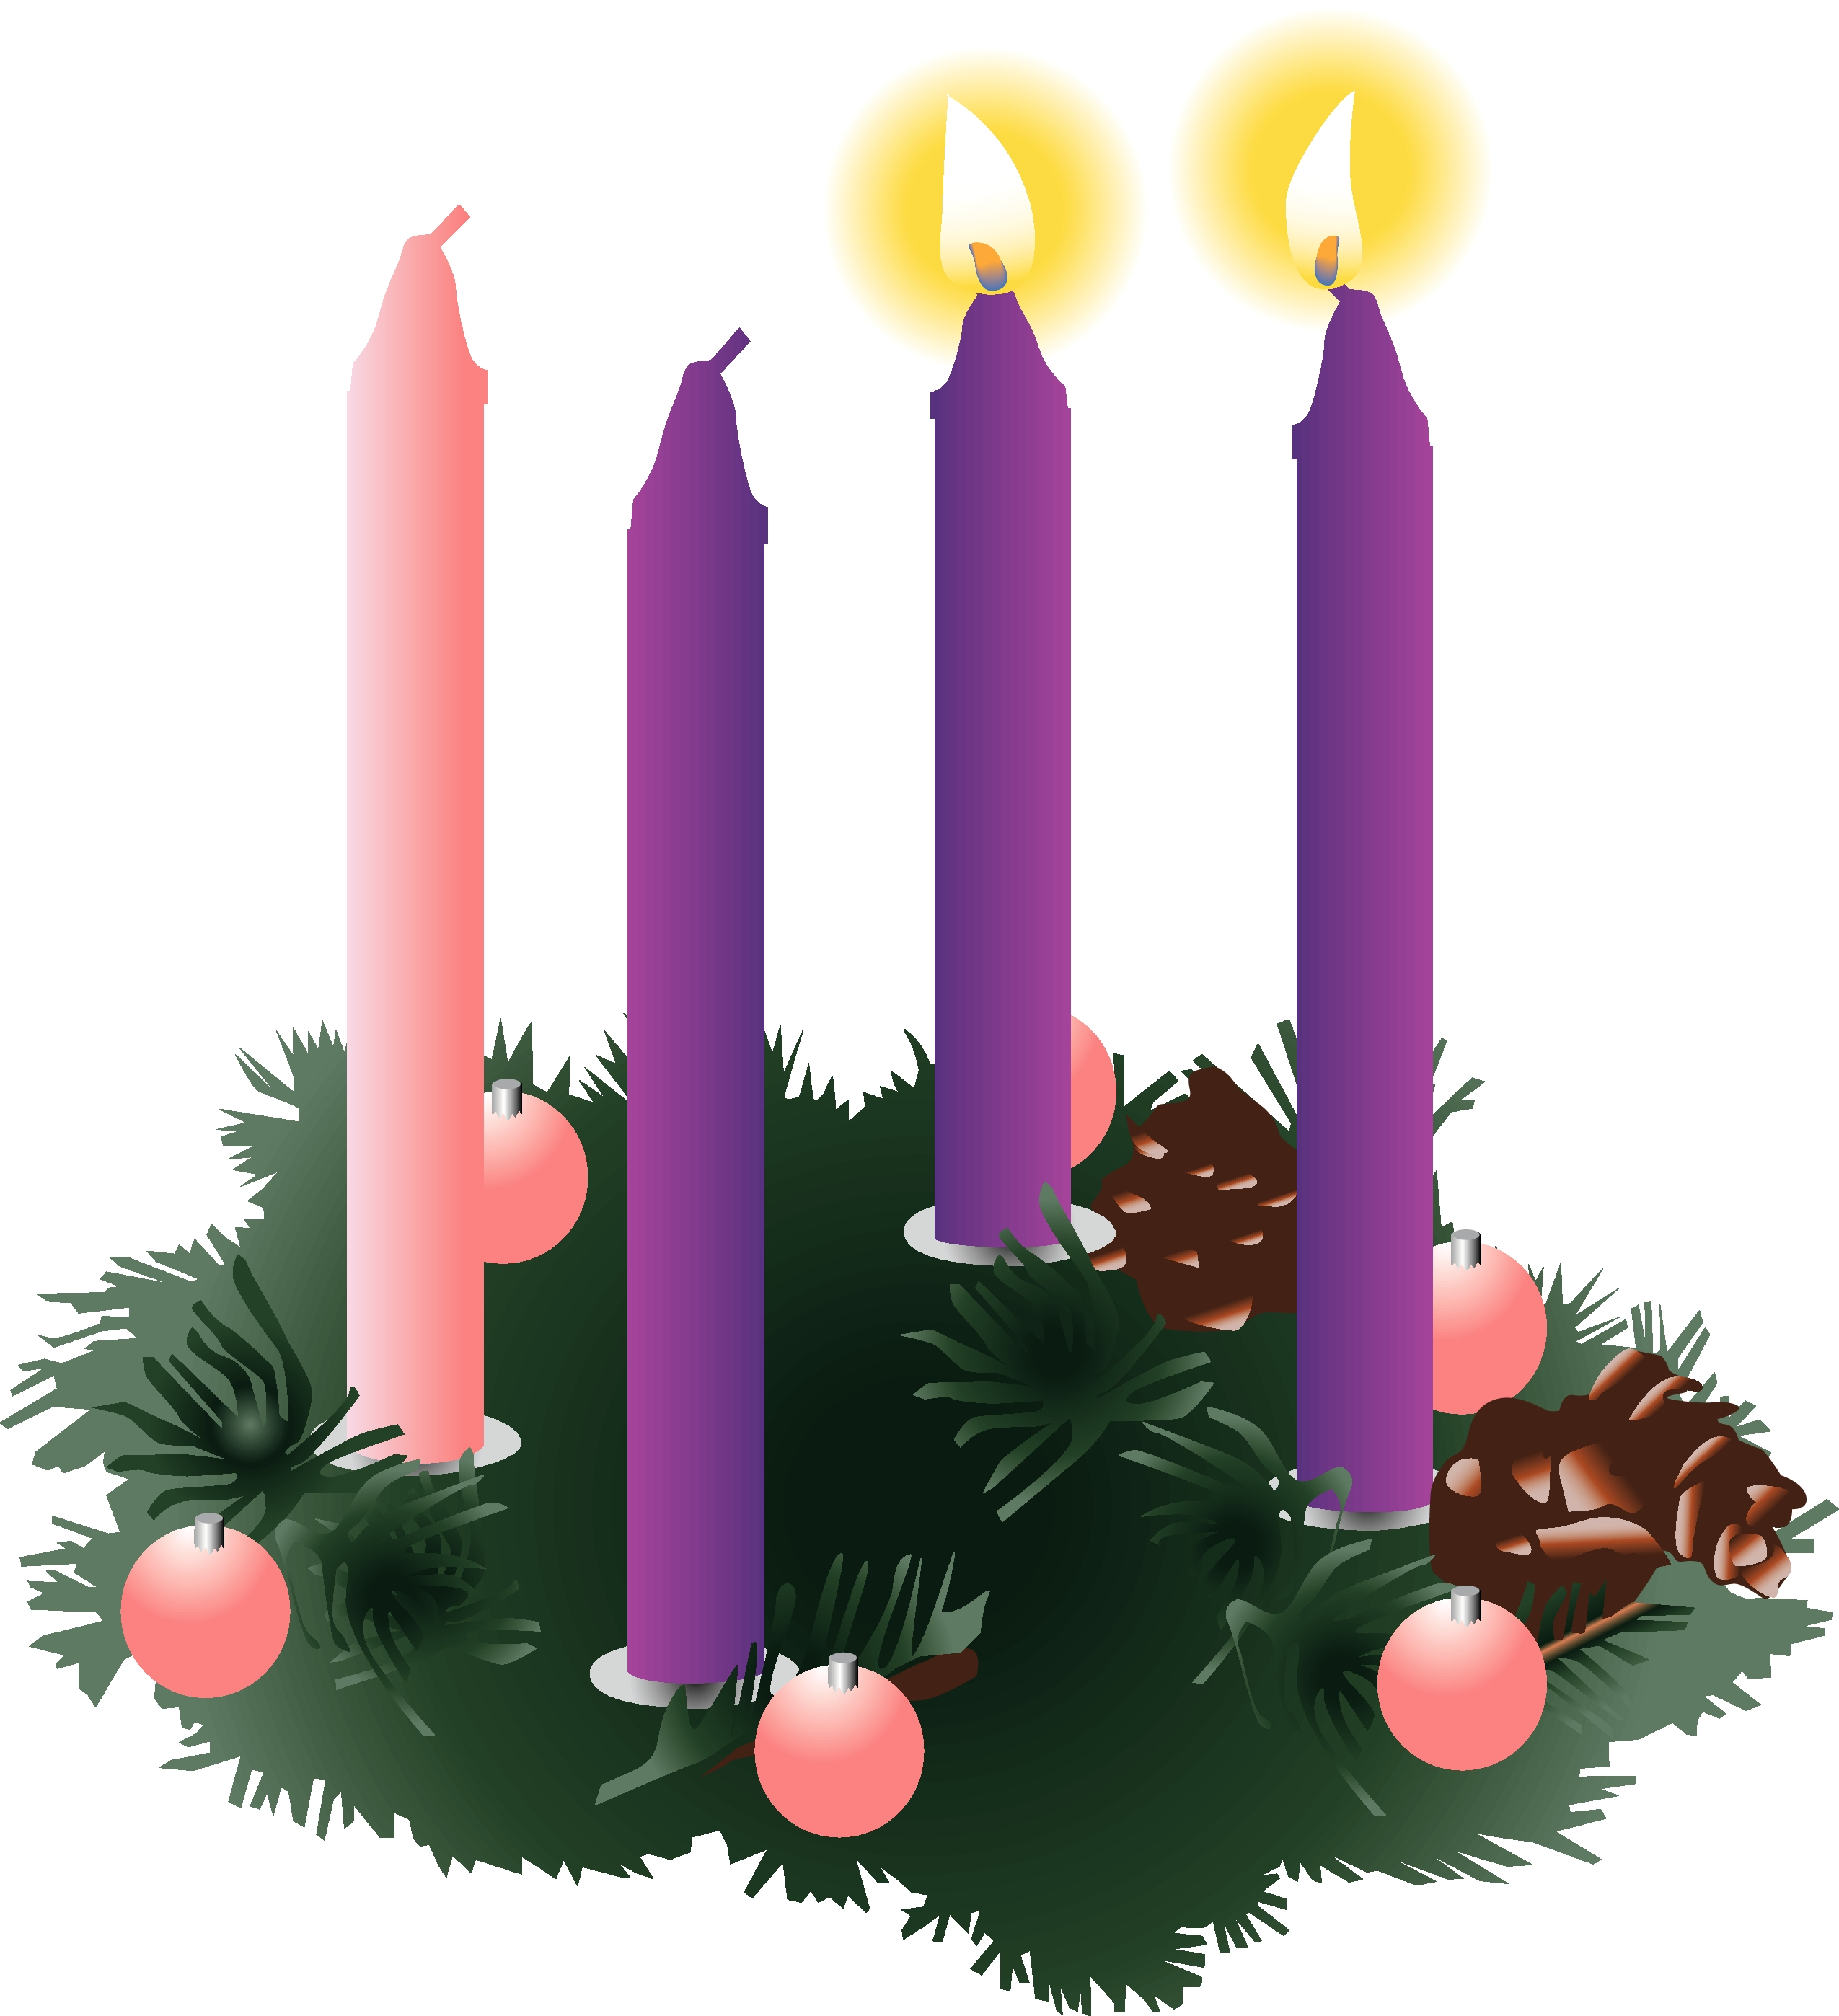 Third Sunday Of Advent Clip Art N3 free image.